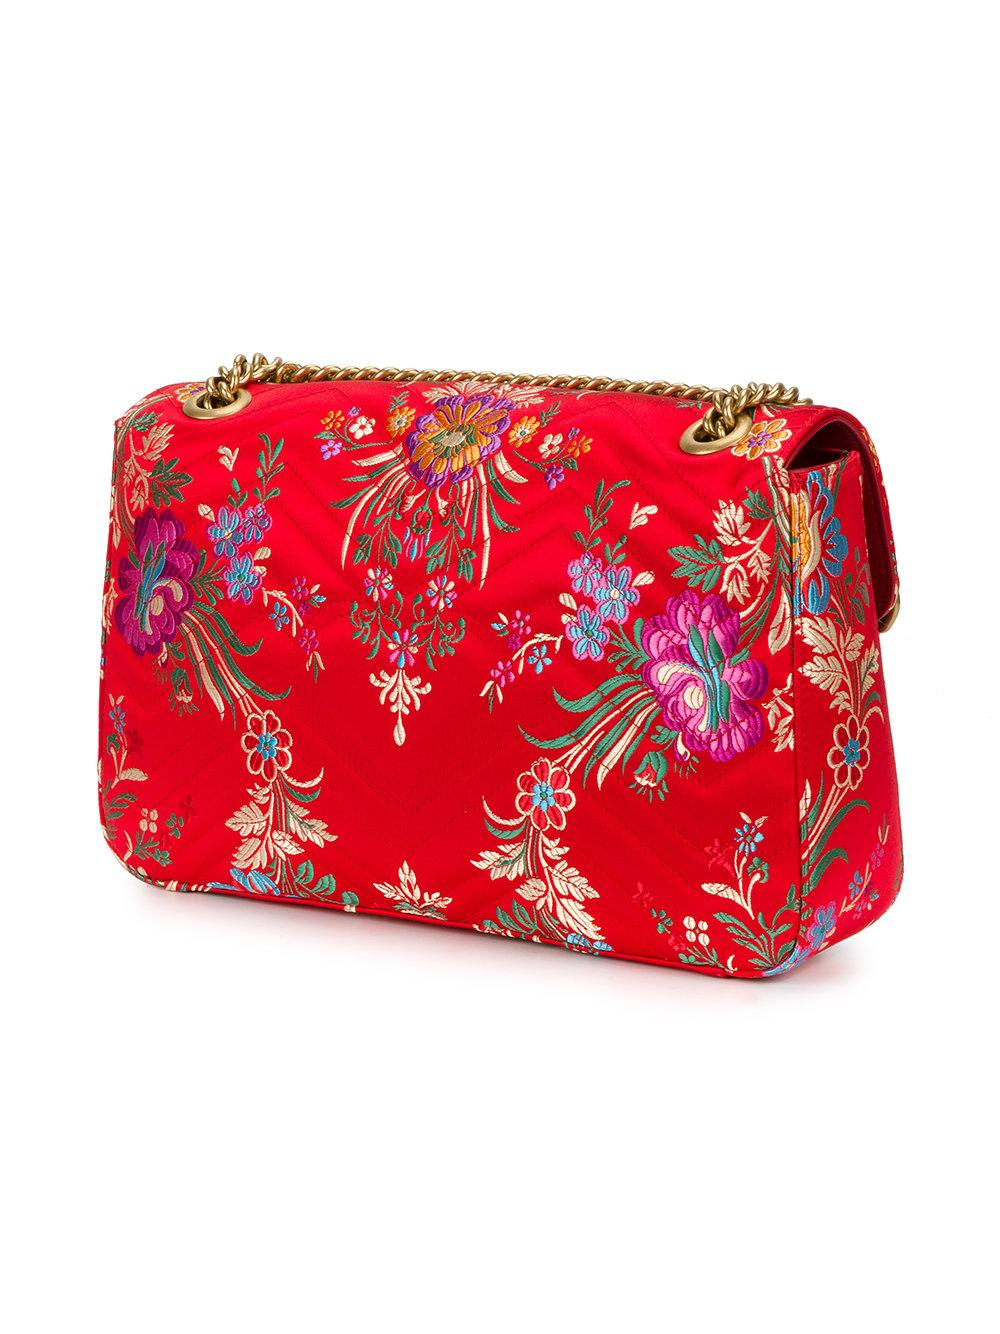 Lyst - Gucci Floral Jacquard Gg Marmont Shoulder Bag In Red